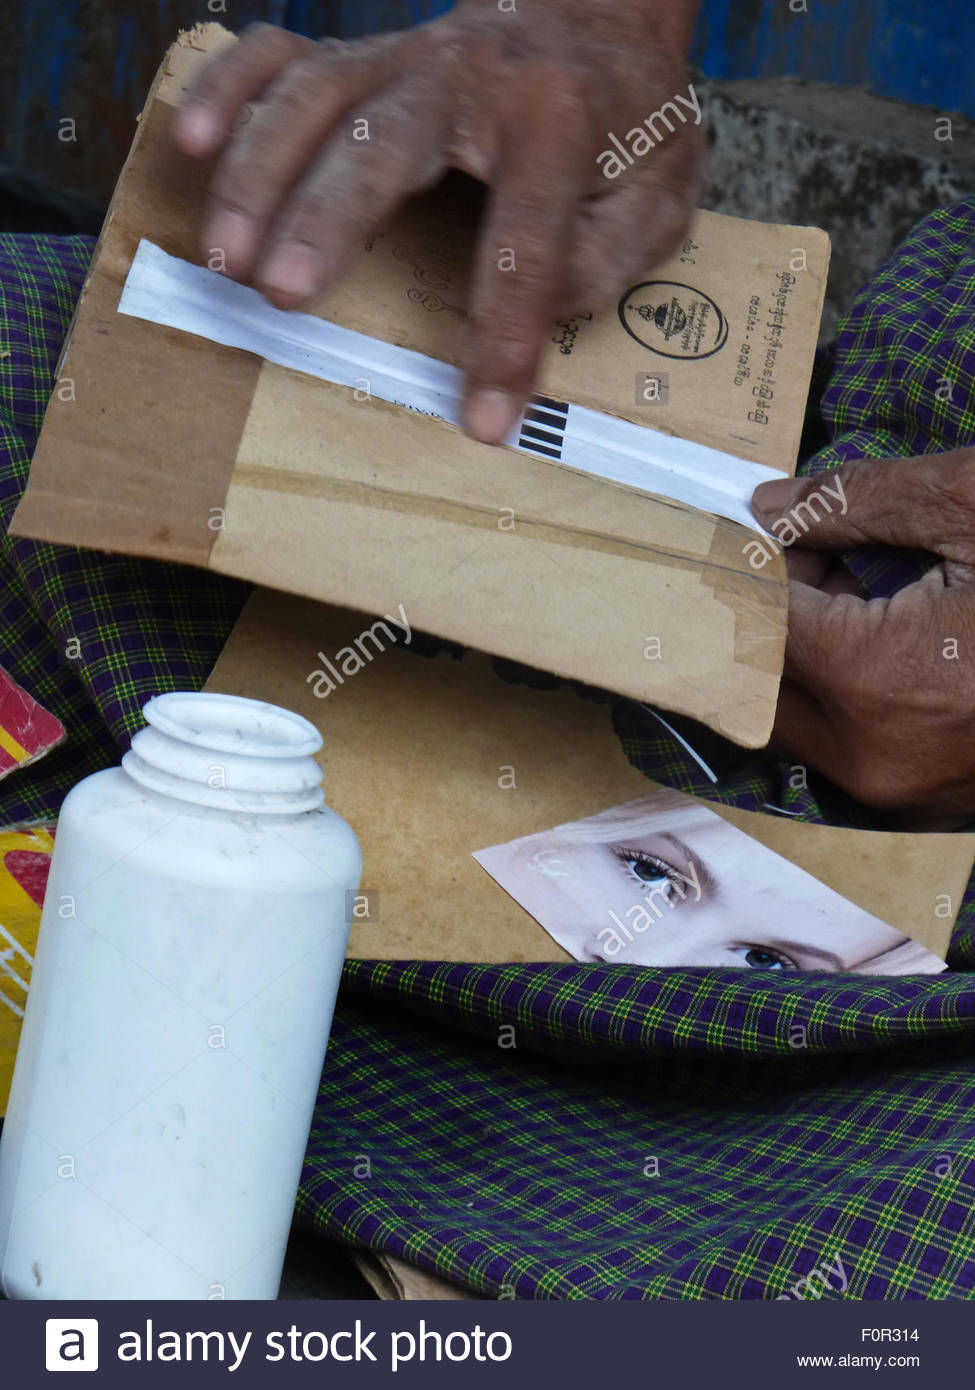 Close up hands and glue bottle of a sidewalk bookseller repairing a book at his table in Yangon, Myanmar where he - Stock Image